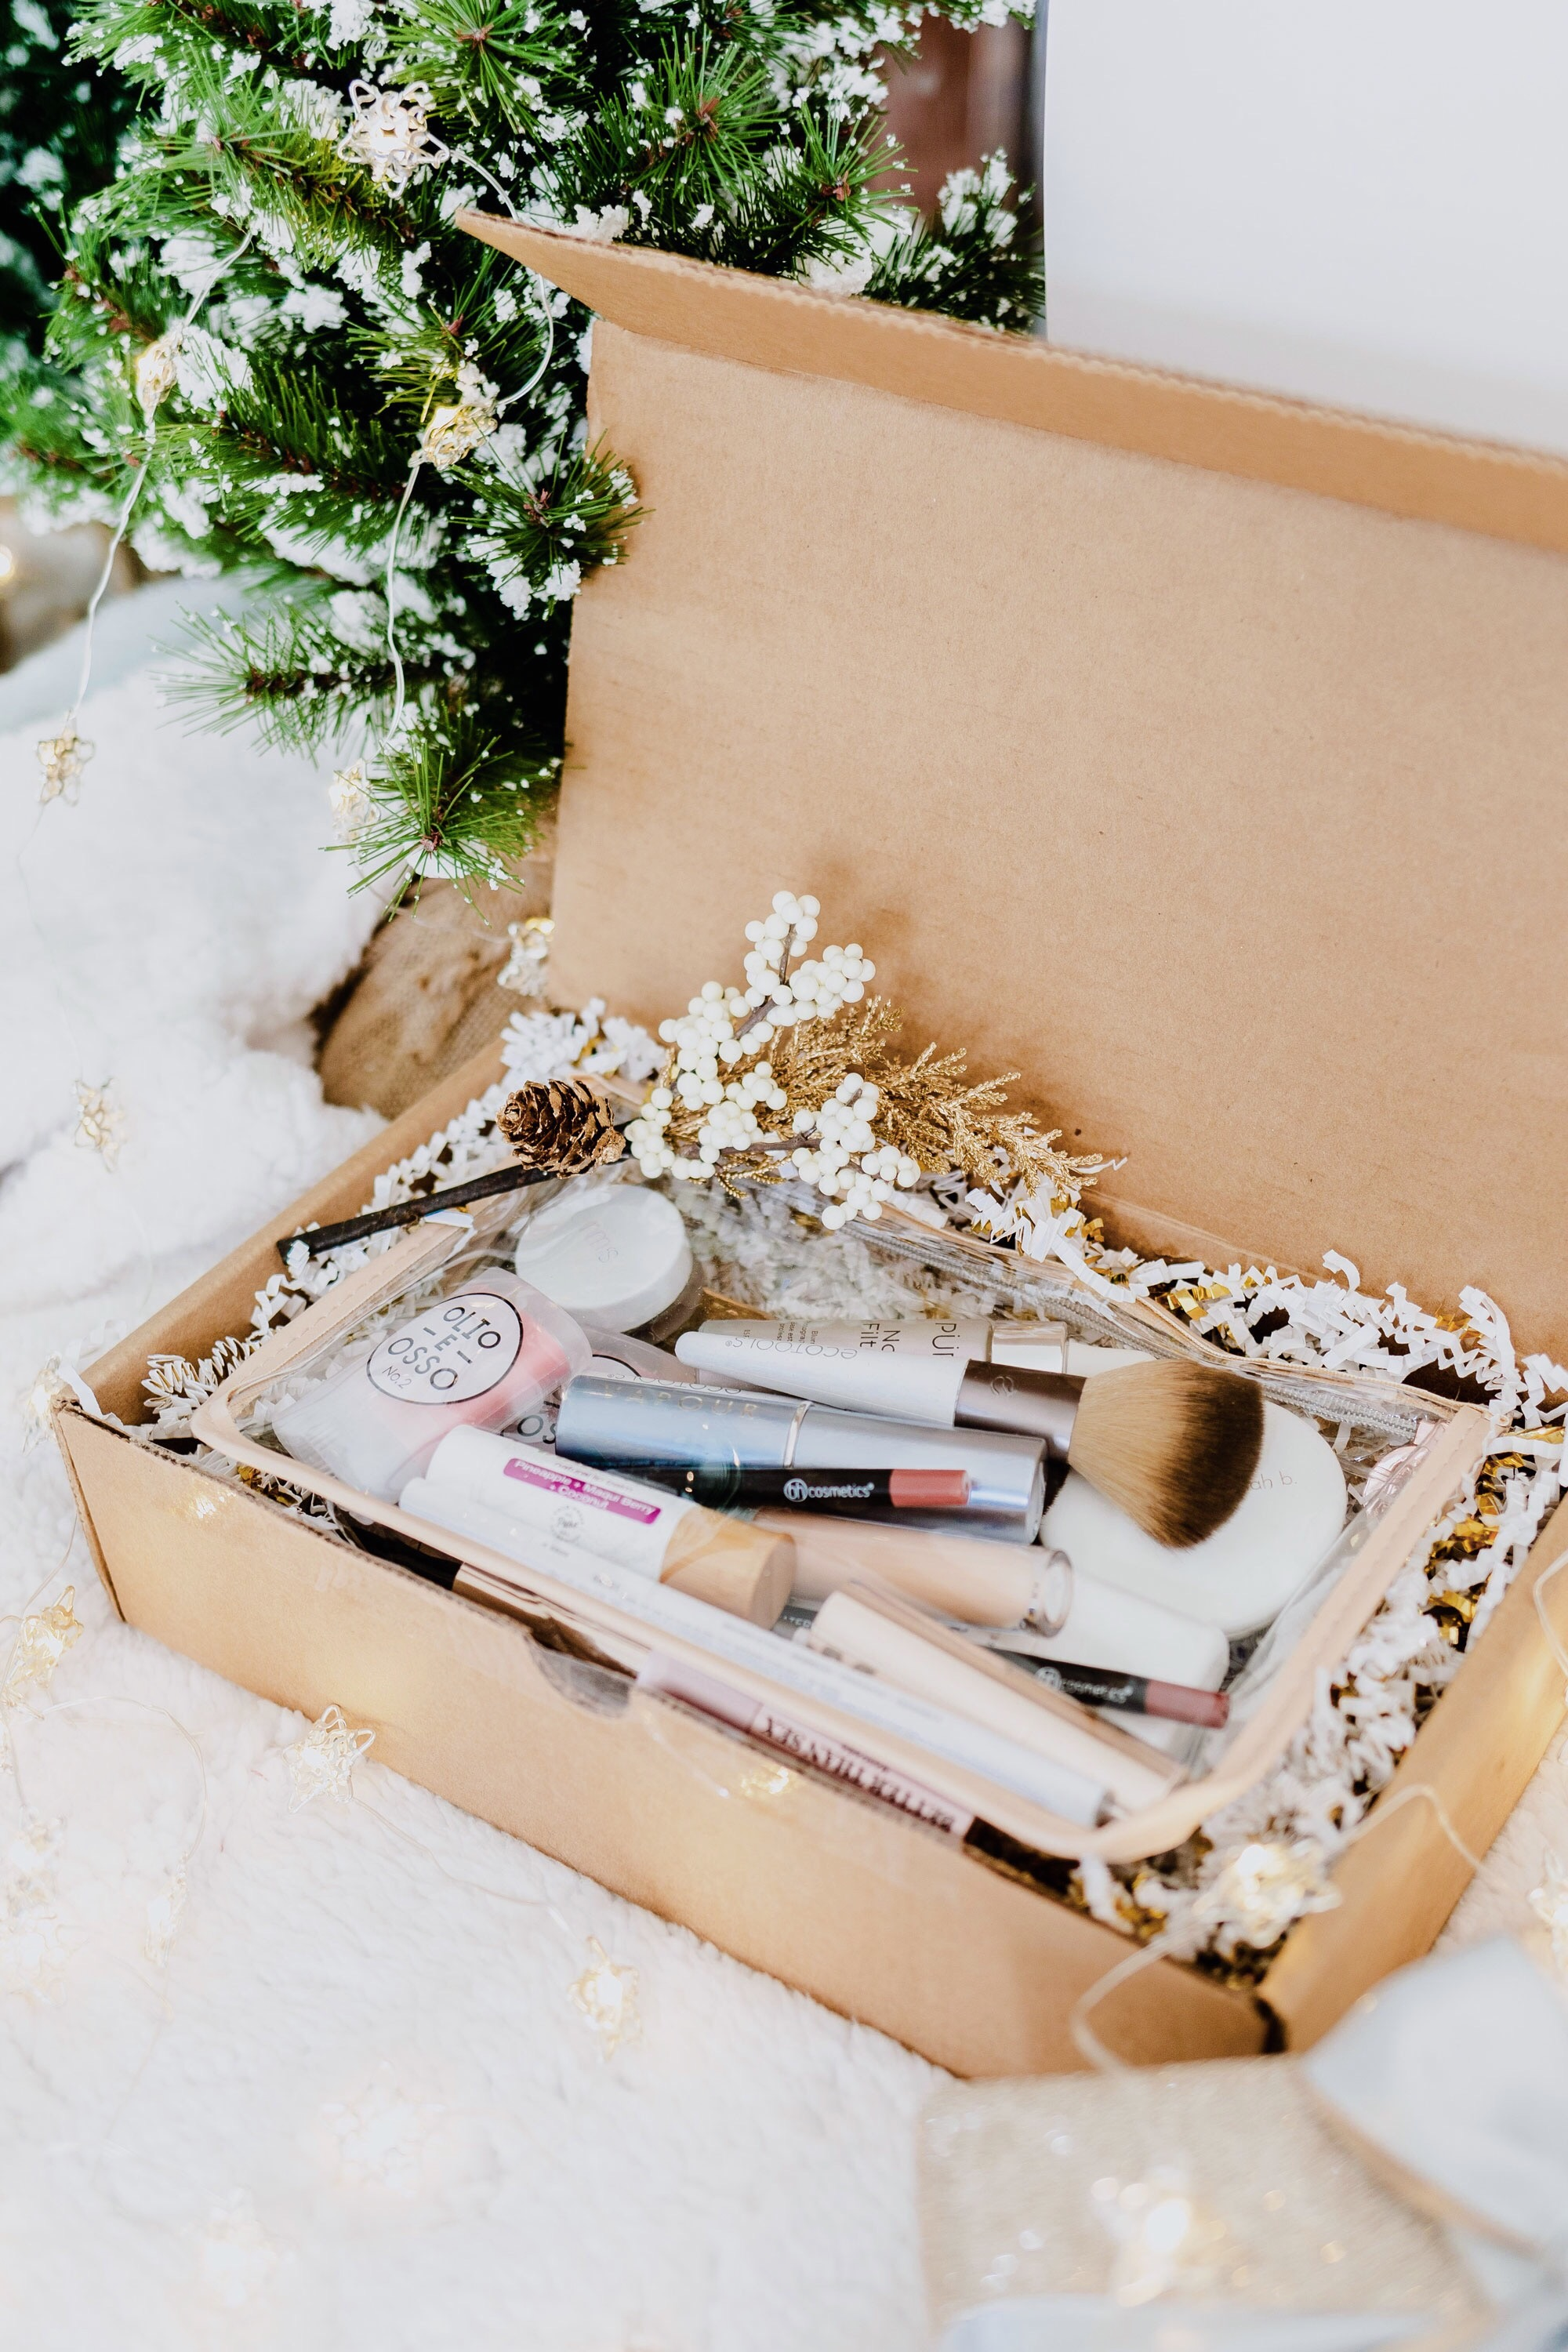 Holiday Gift Guide : DIY Clean Makeup Box